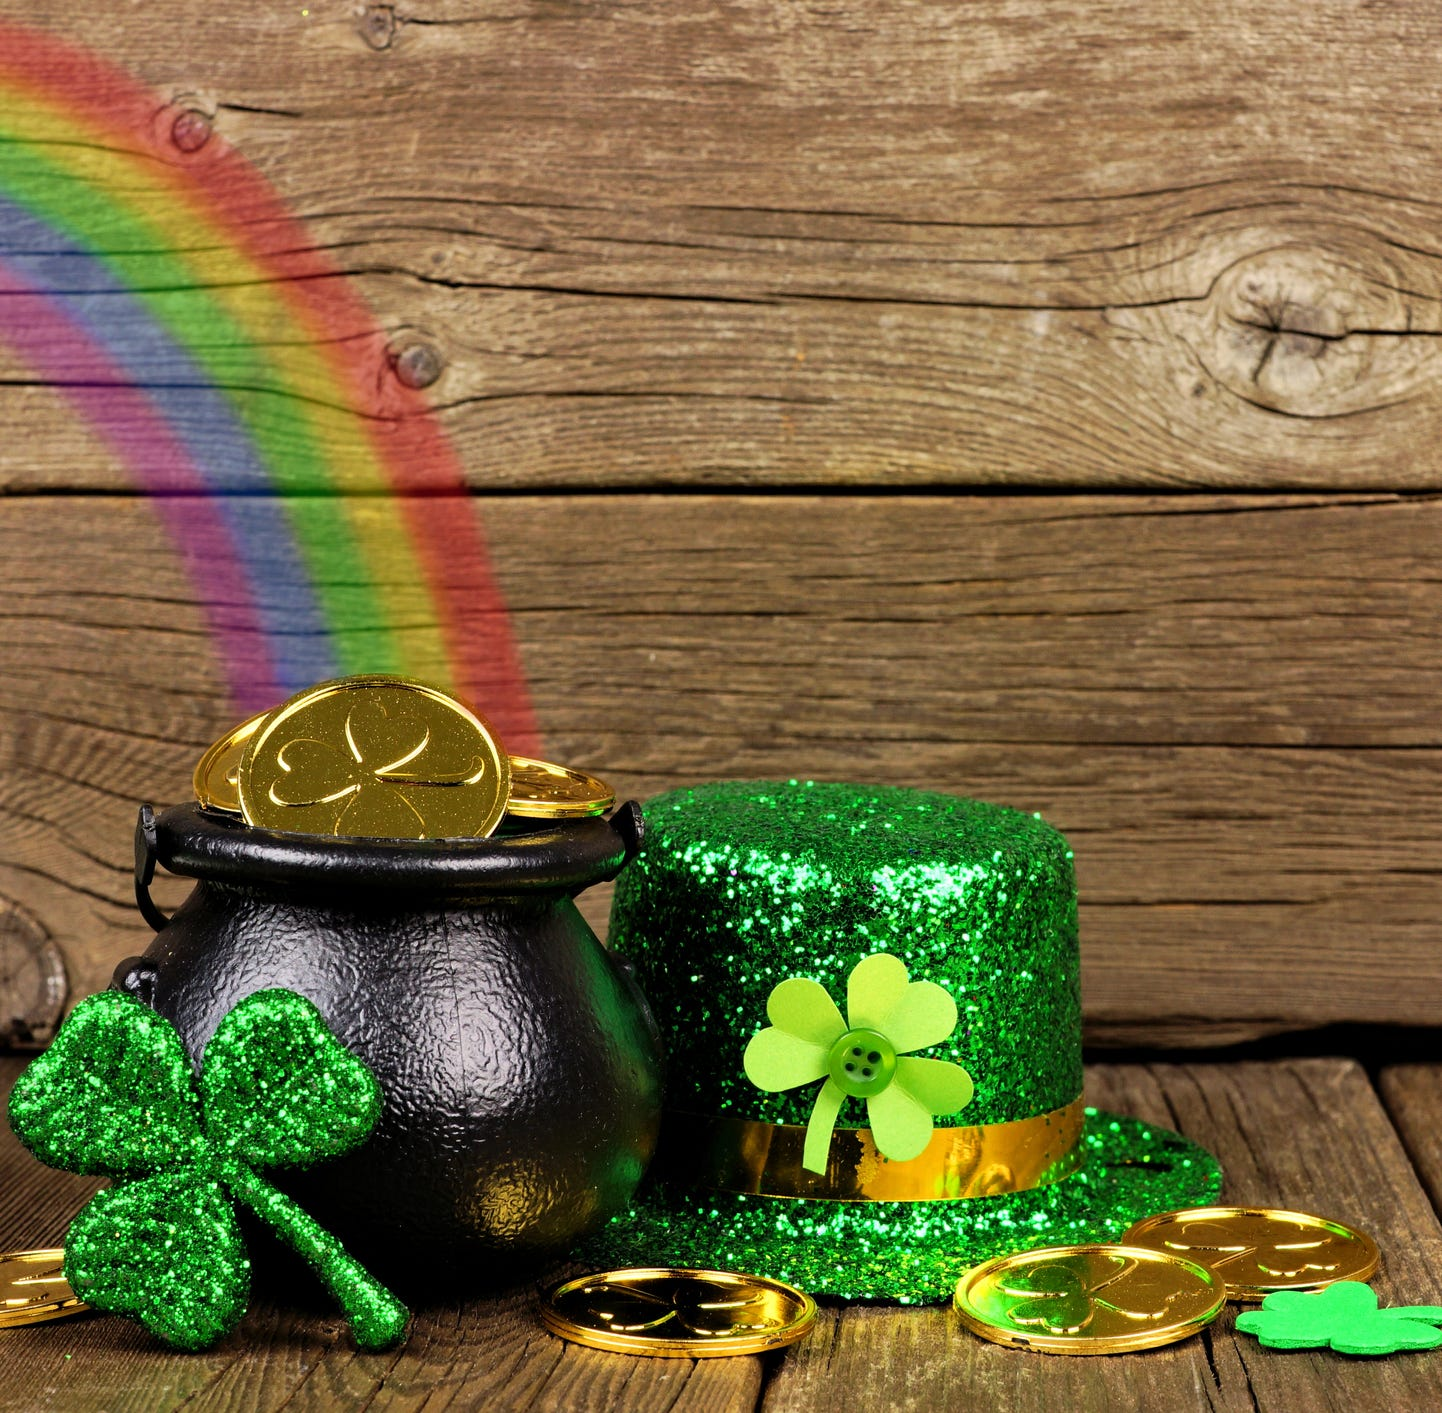 Here's where to celebrate St. Patrick's Day in Las Cruces